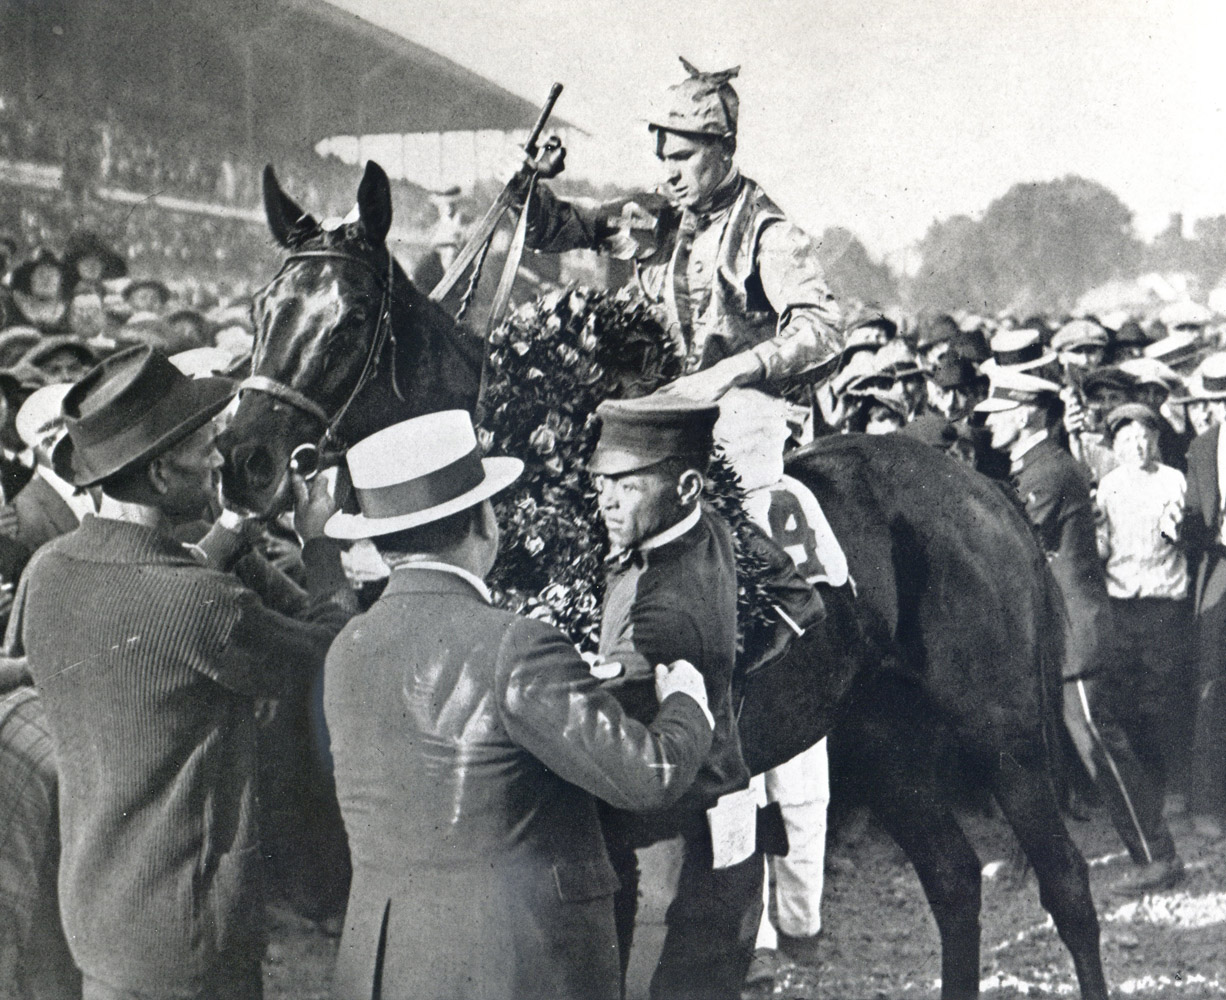 Albert Johnson and Morvich in the winner's circle for the 1922 Kentucky Derby (Churchill Downs Inc./Kinetic Corp. /Museum Collection)